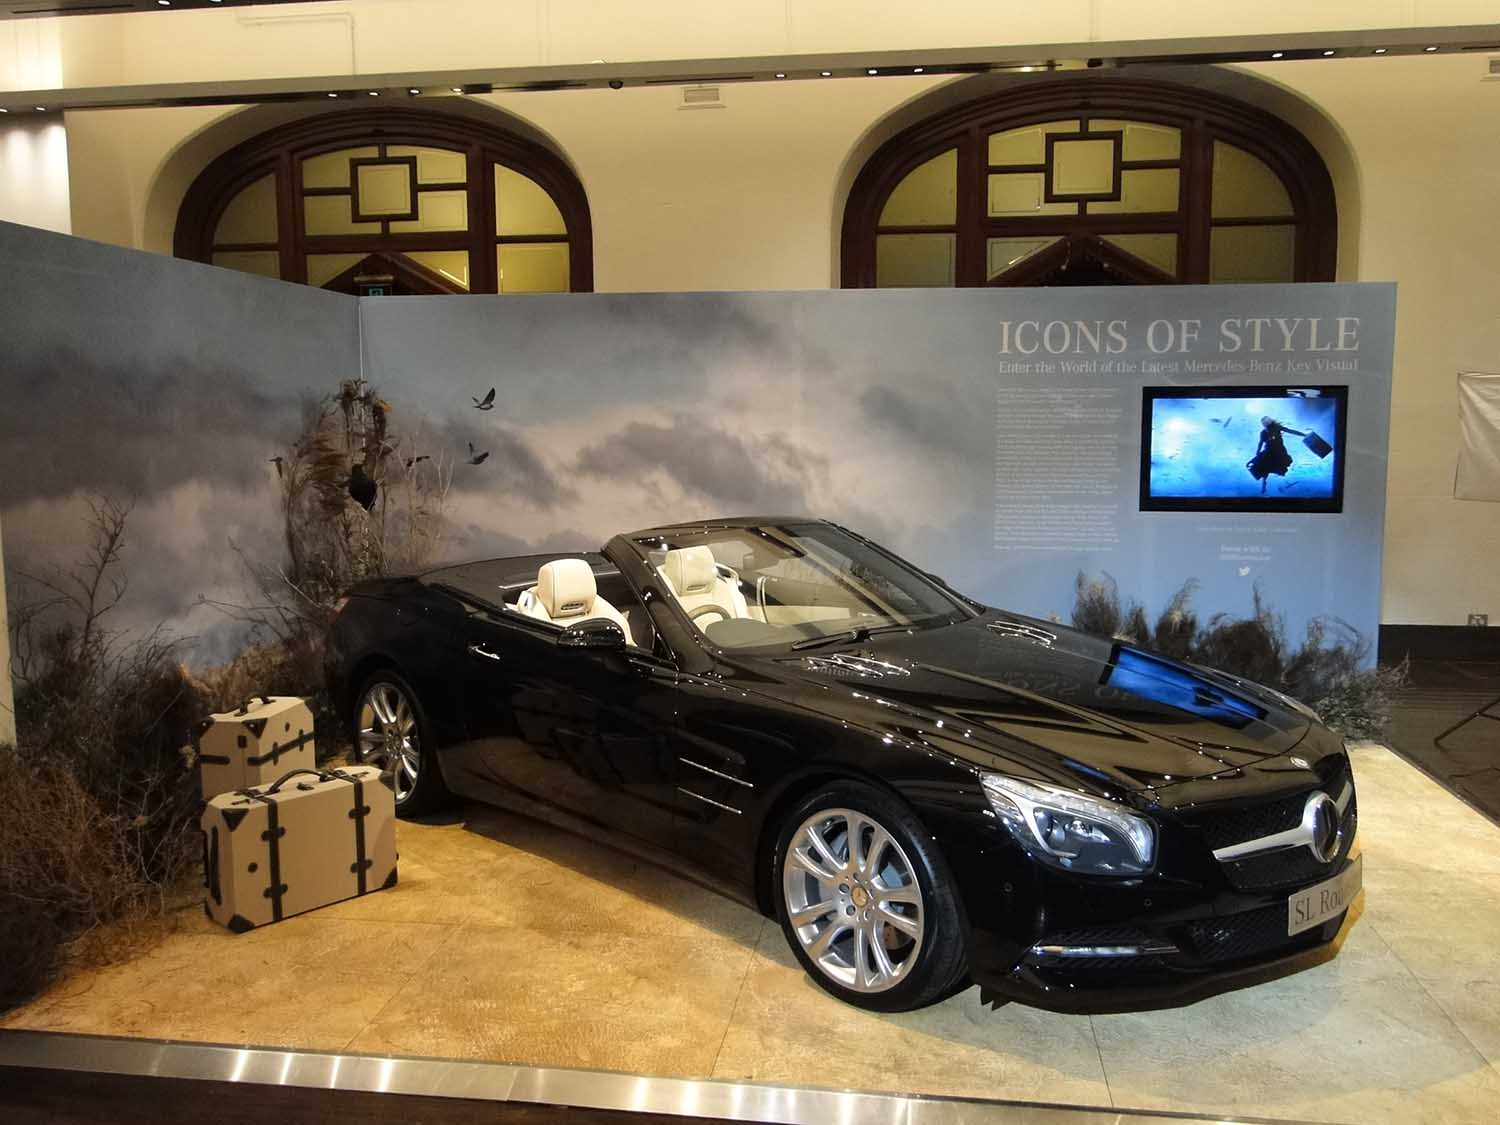 Frontlit Fabric Displays Global Imaging - Car show booth ideas